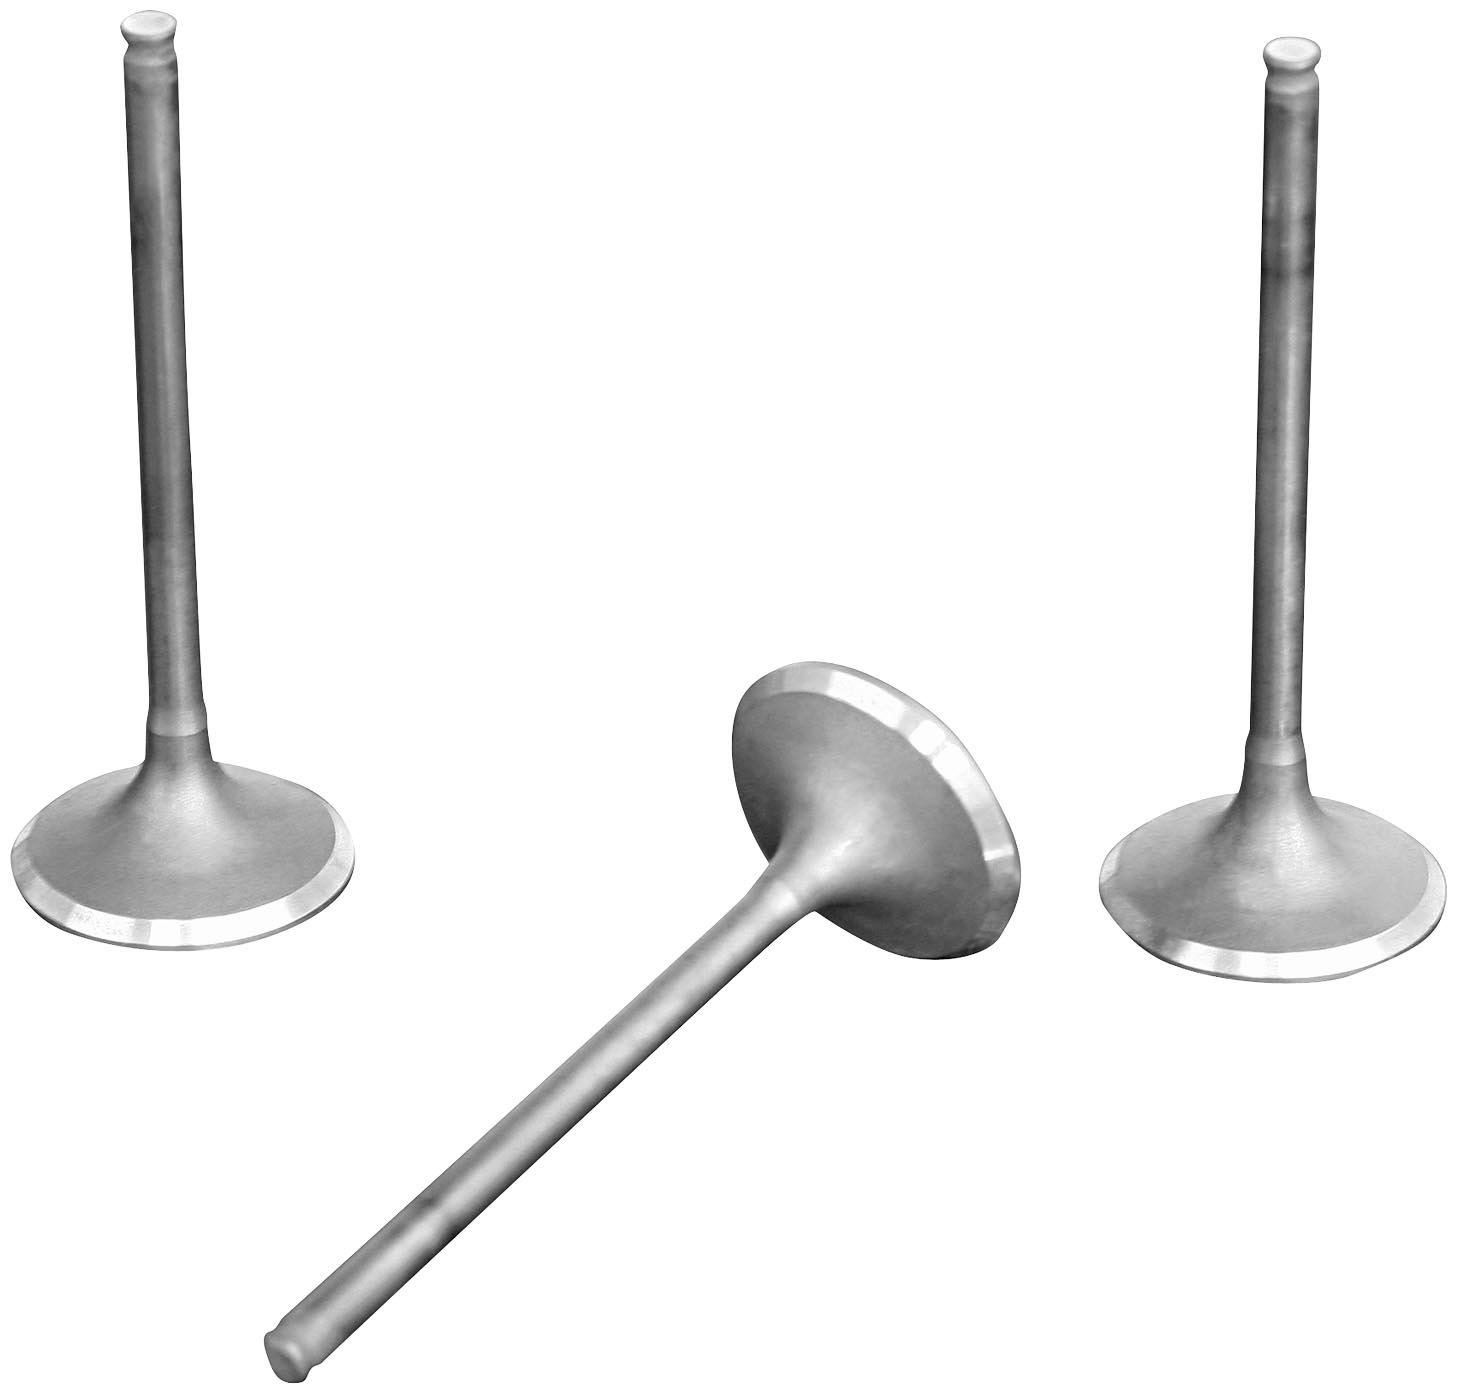 Pro-X Intake Valve - Steel 28.1381-2 by Prox Racing Parts (Image #1)